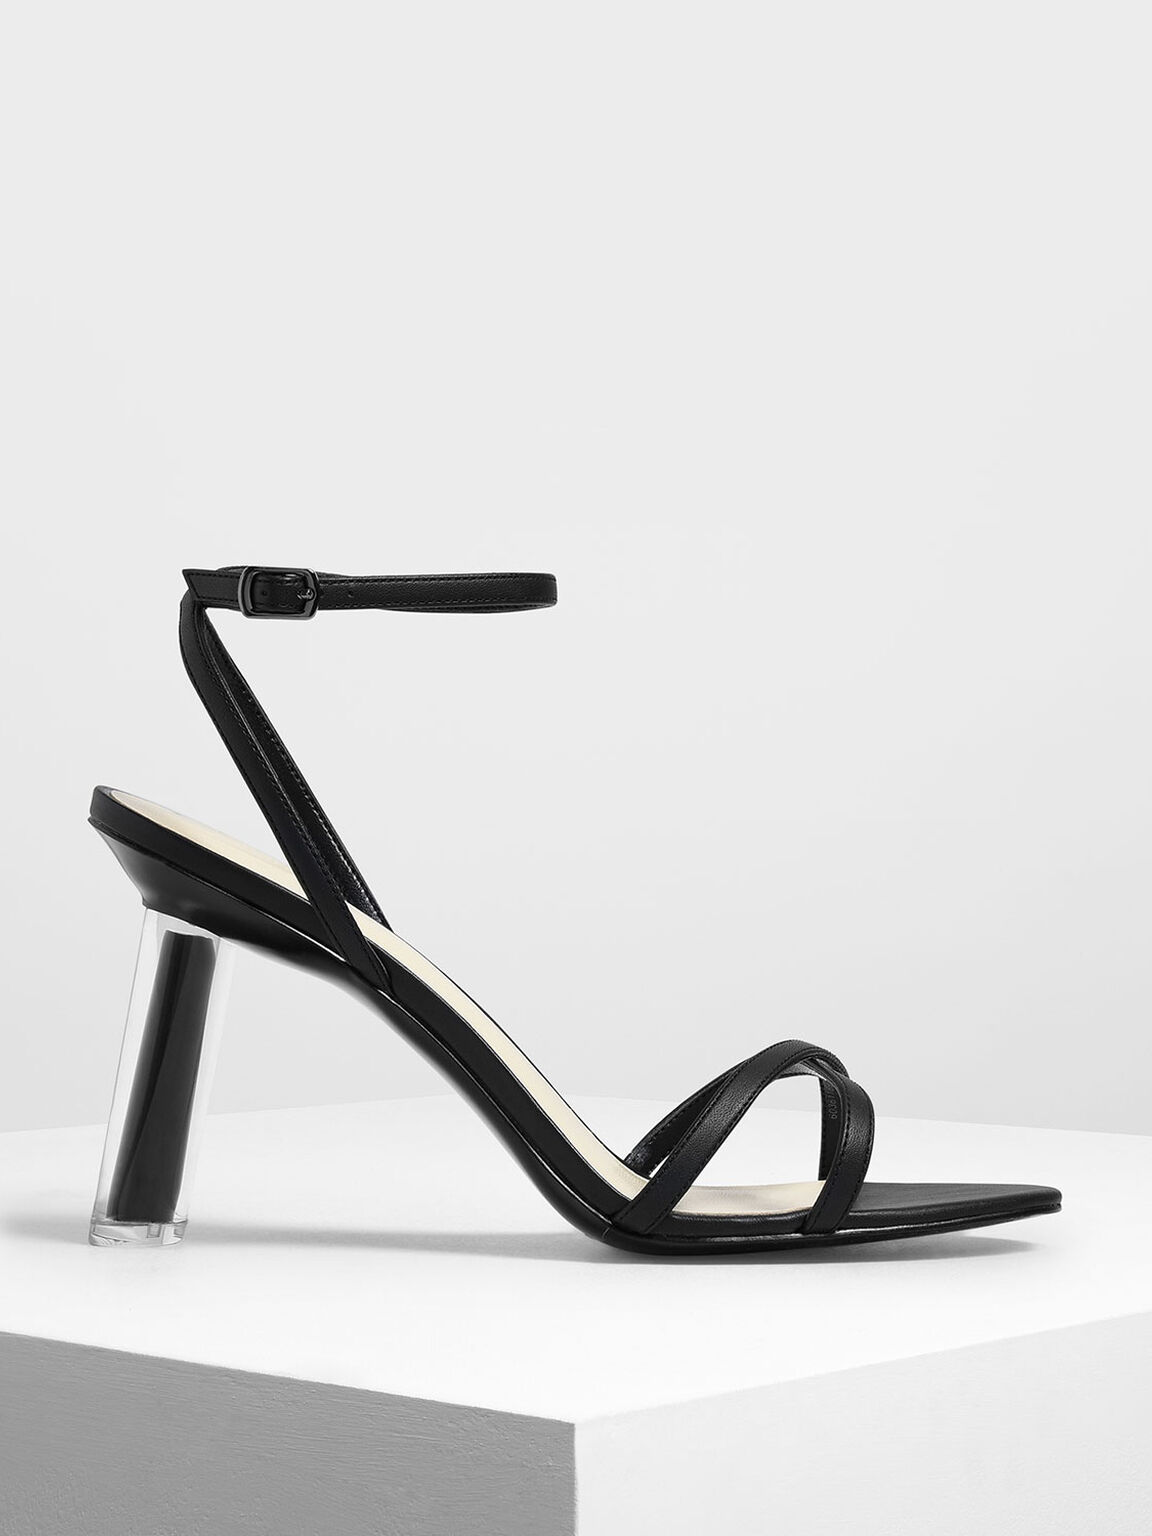 Criss Cross Sculptural Heel Sandals, Black, hi-res